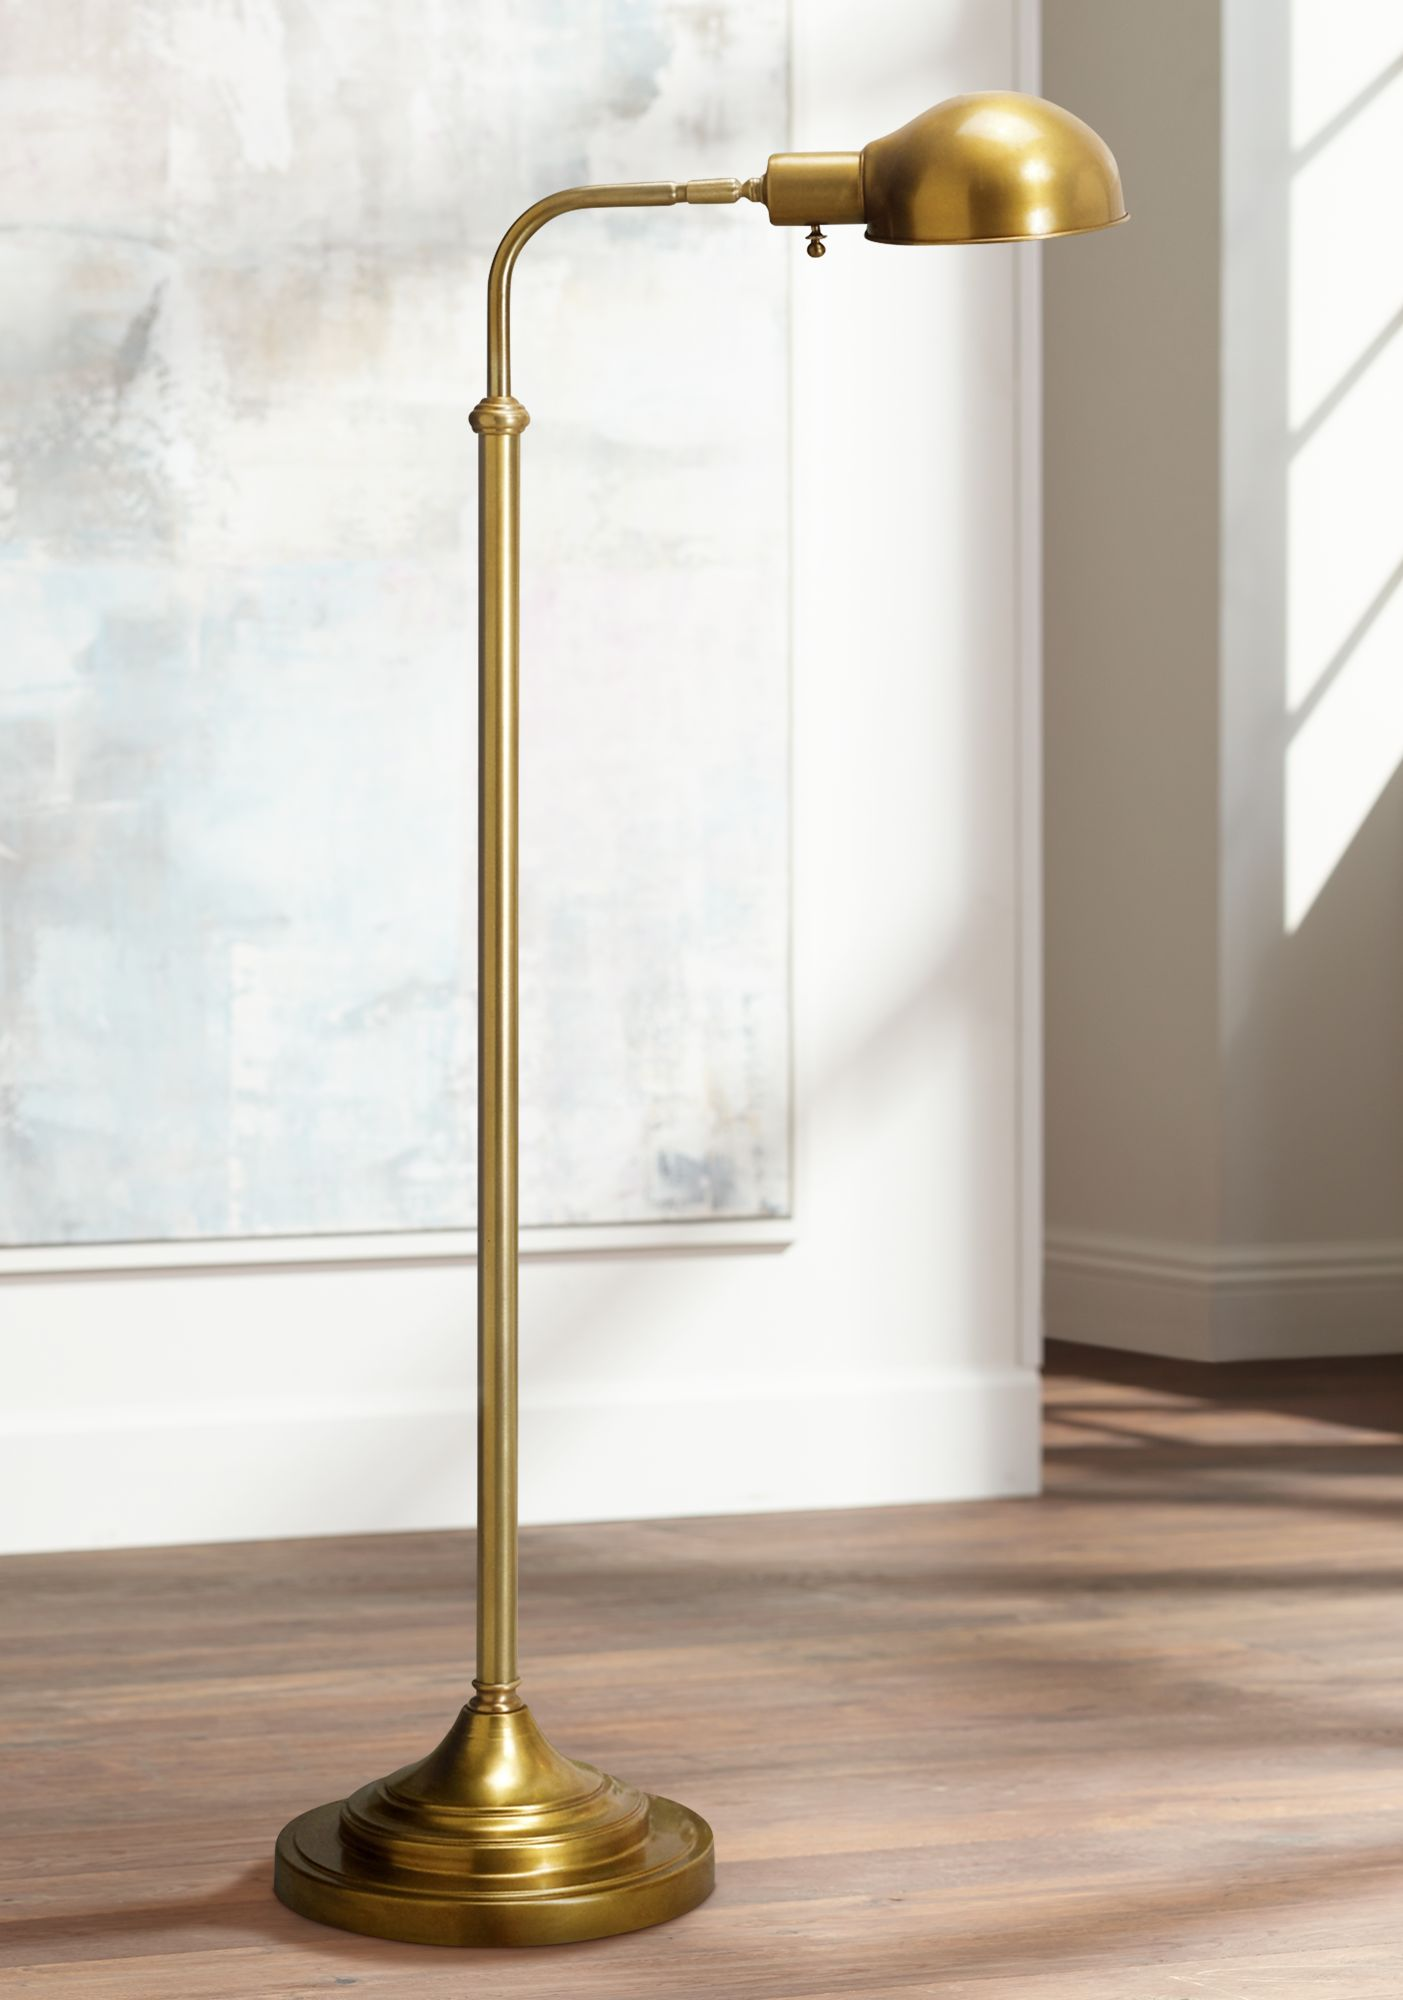 Exceptionnel Robert Abbey Kinetic Antique Brass Pharmacy Floor Lamp